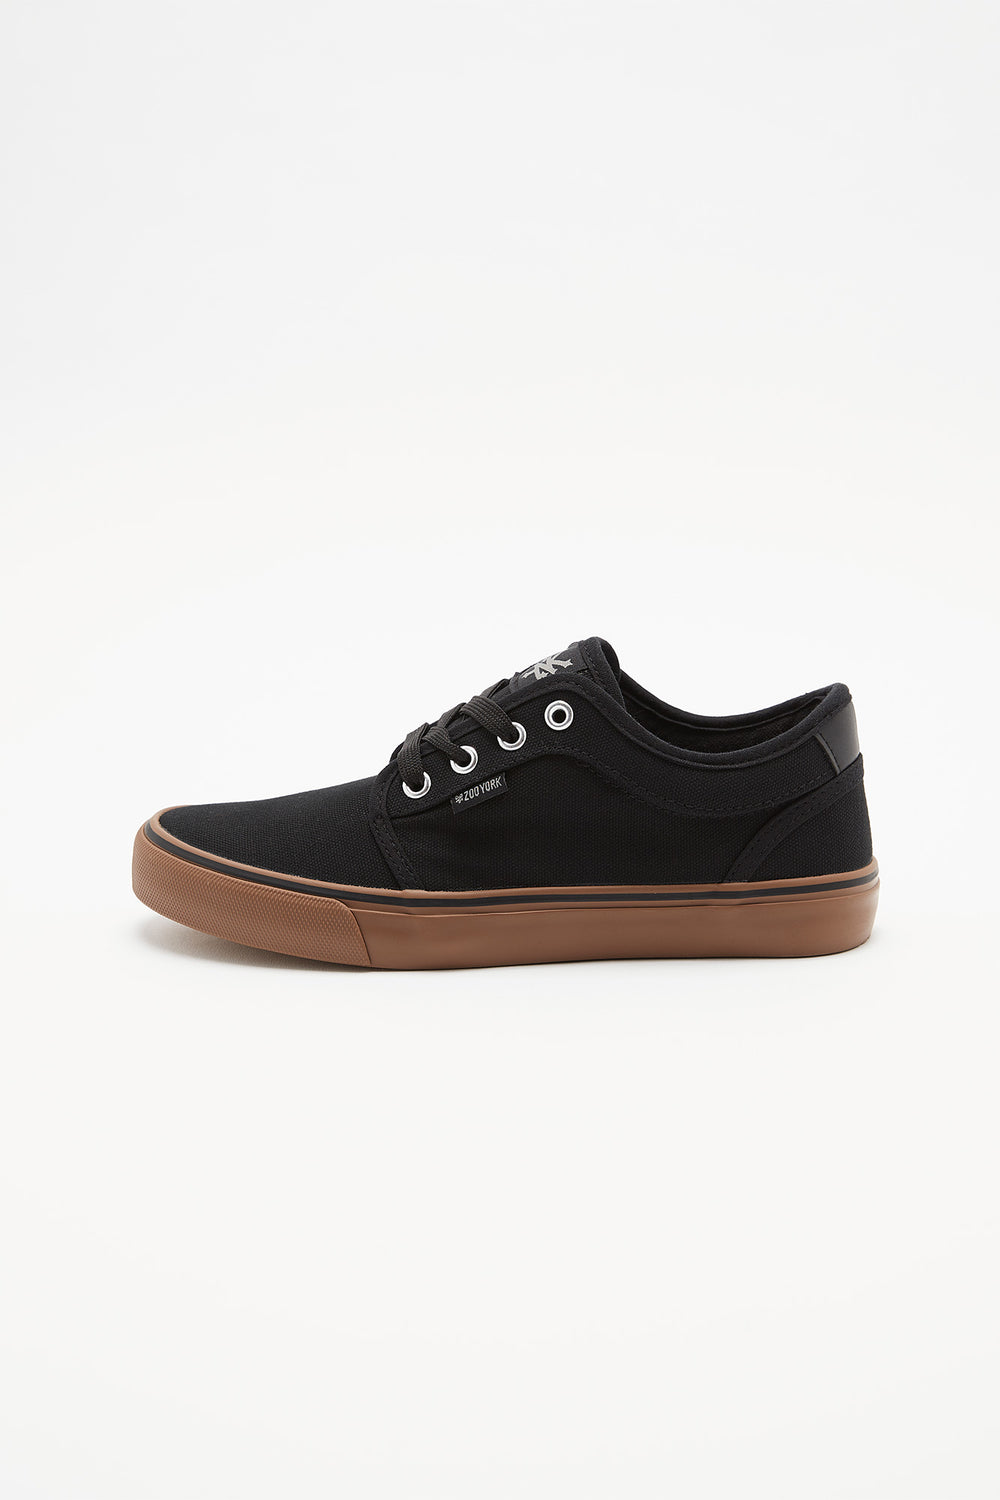 Zoo York Boys Lace-Up Canvas Skate Shoes Pure Black